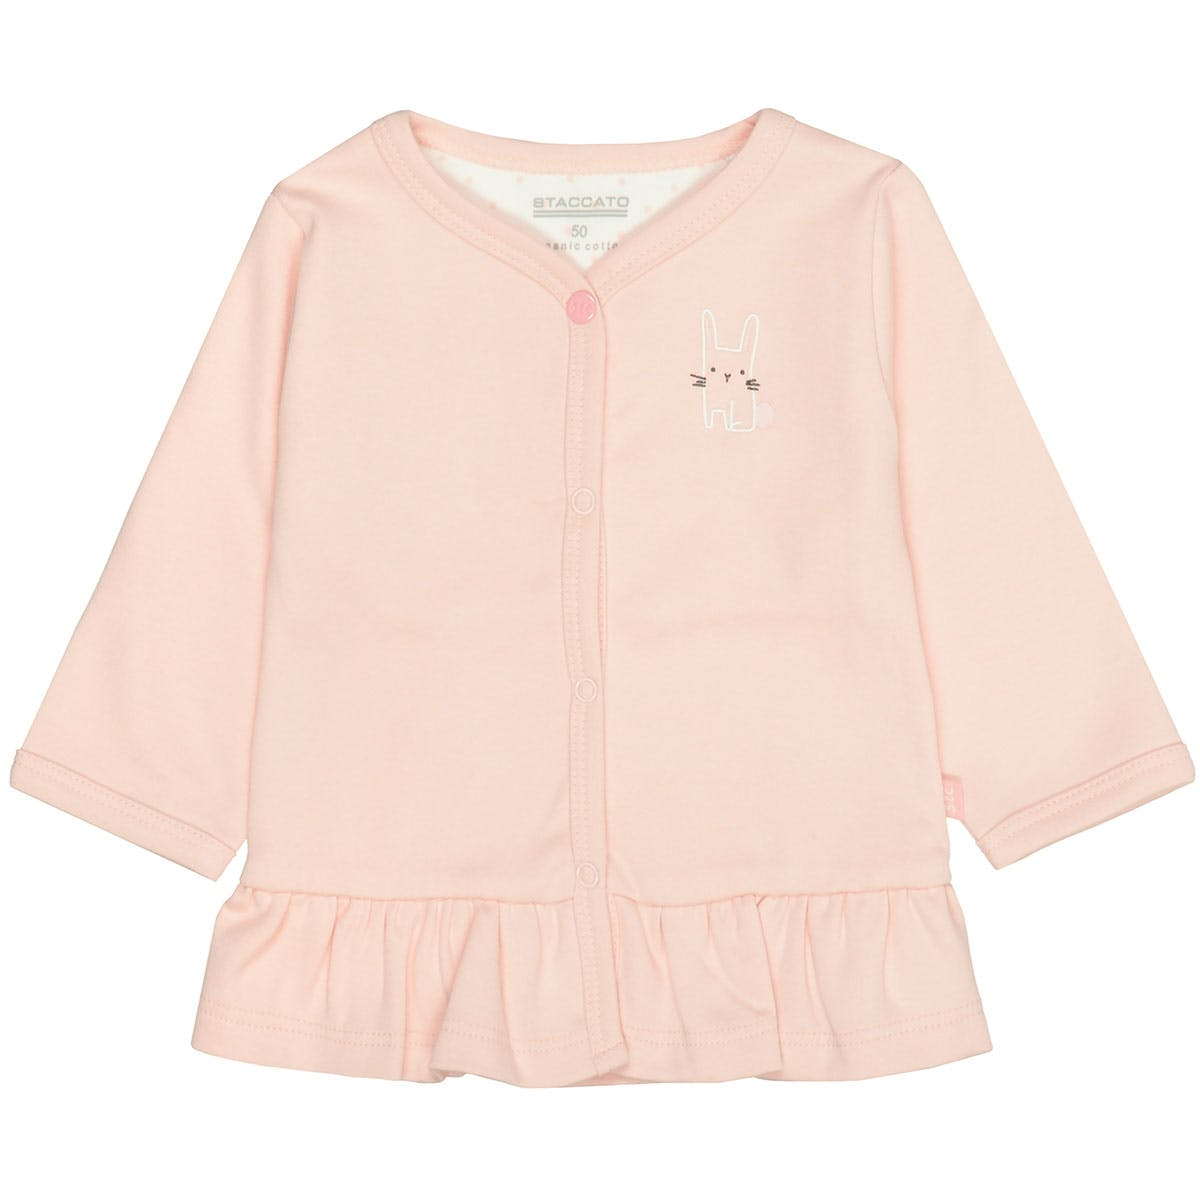 ORGANIC COTTON Jacke Hase - Soft Blush